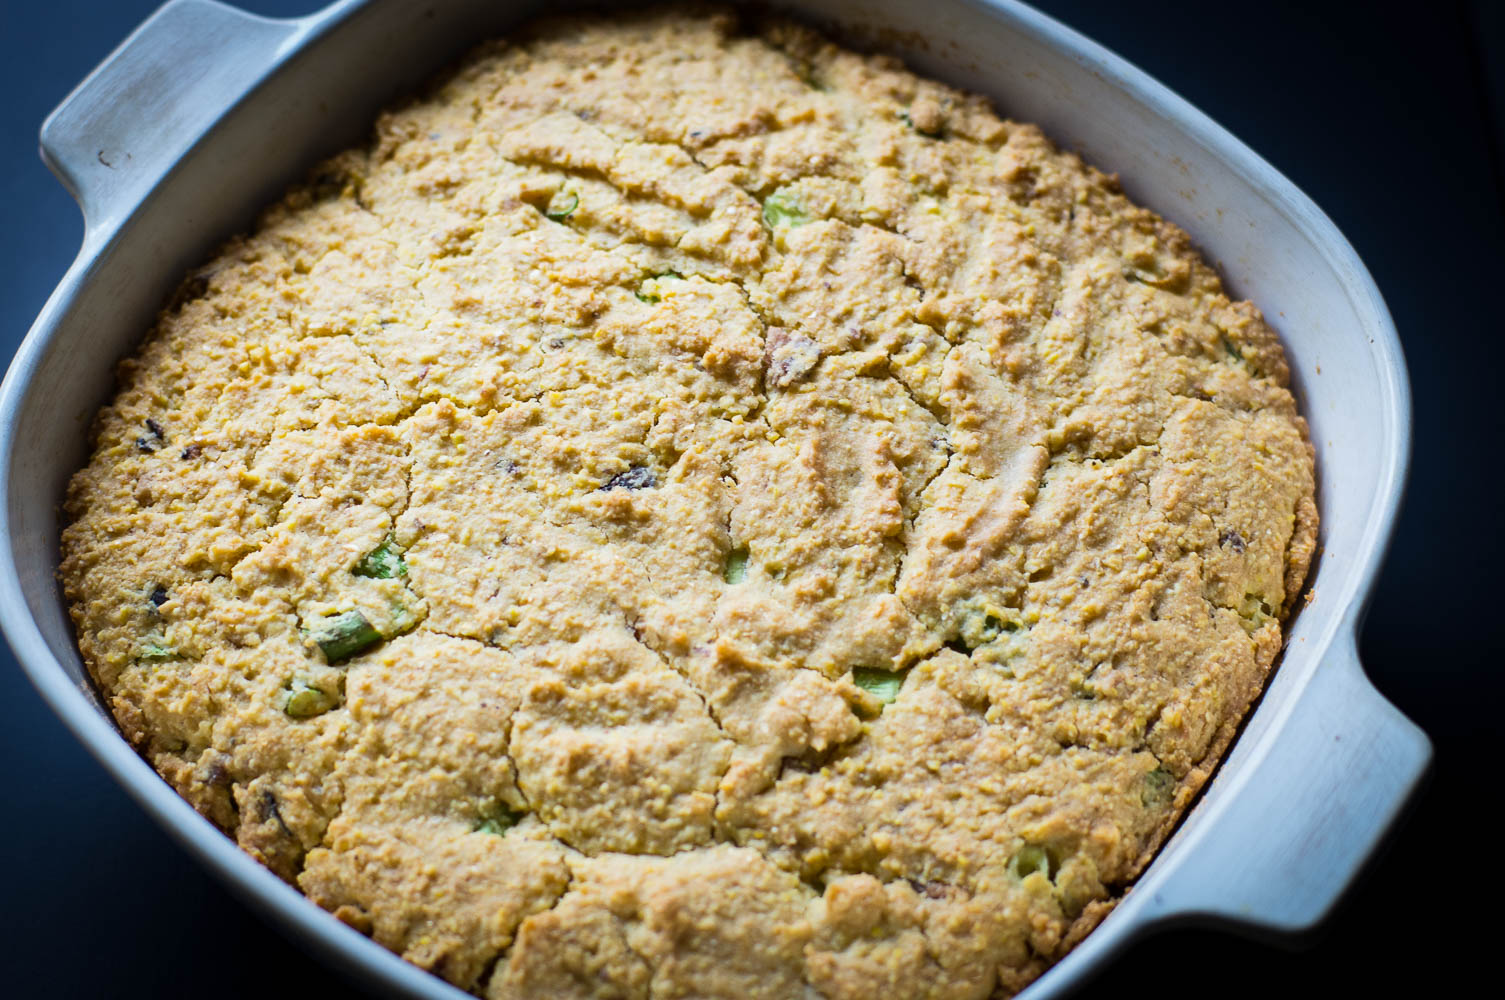 vintage corningware is great for making cornbread with a crisp crust